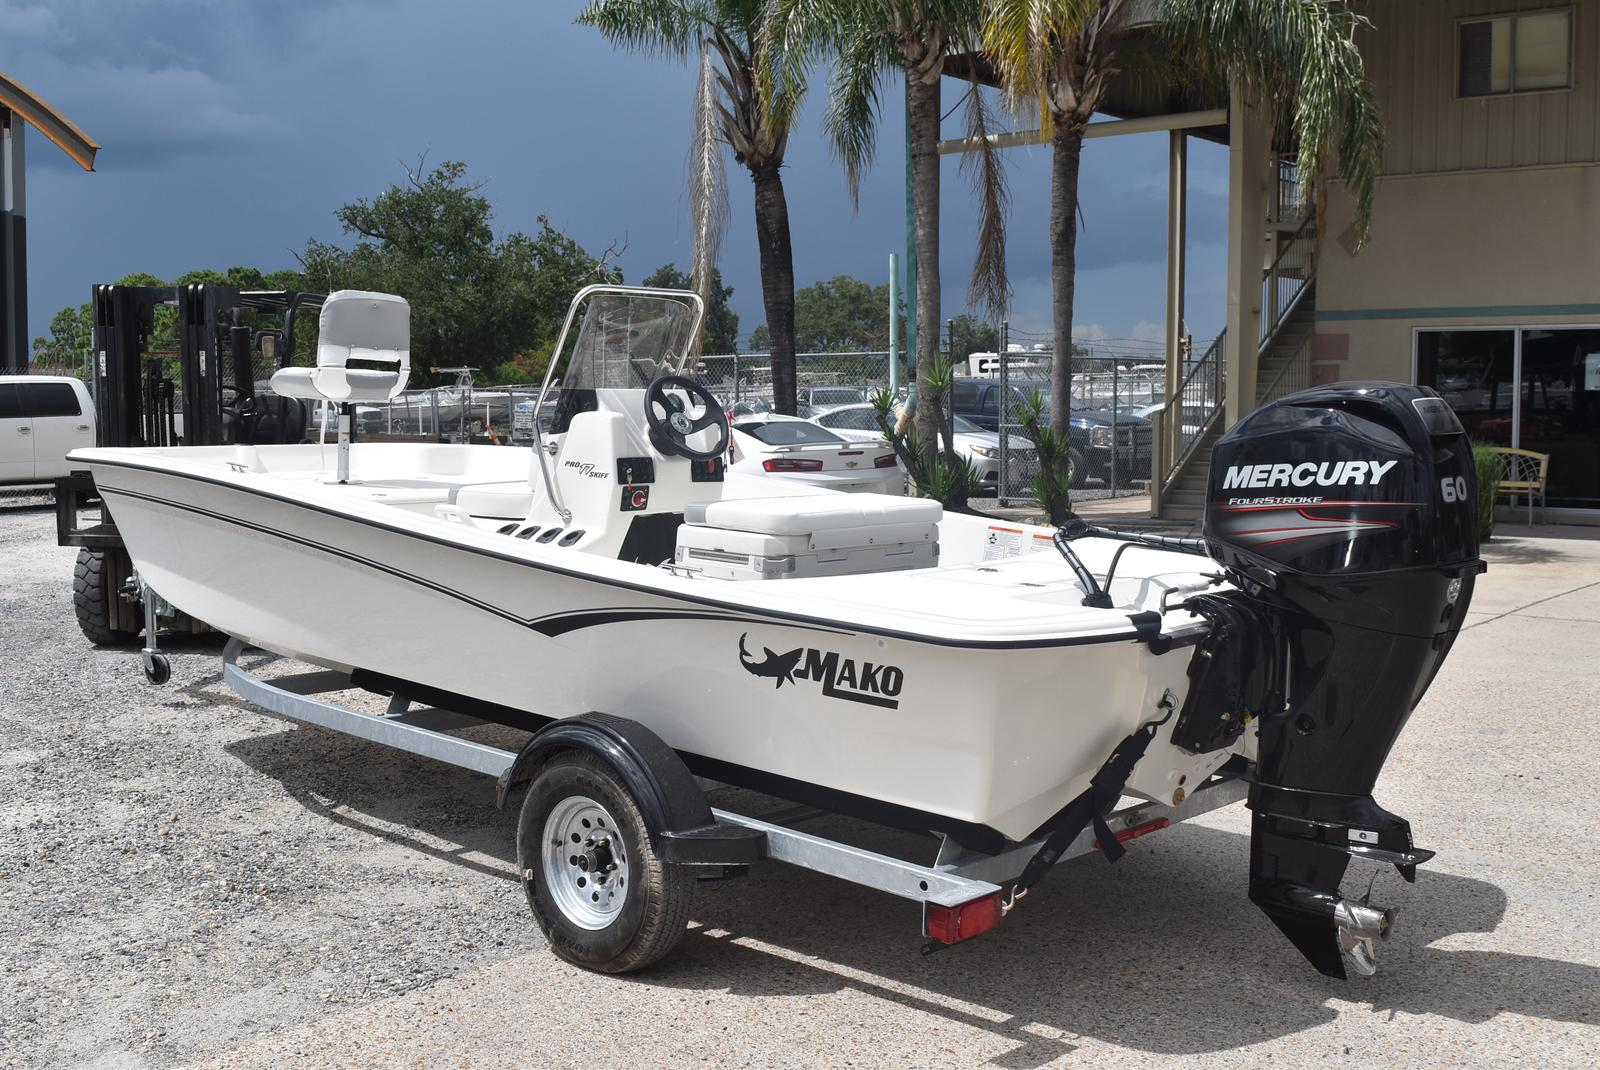 2020 Mako boat for sale, model of the boat is Pro Skiff 17, 75 ELPT & Image # 211 of 702